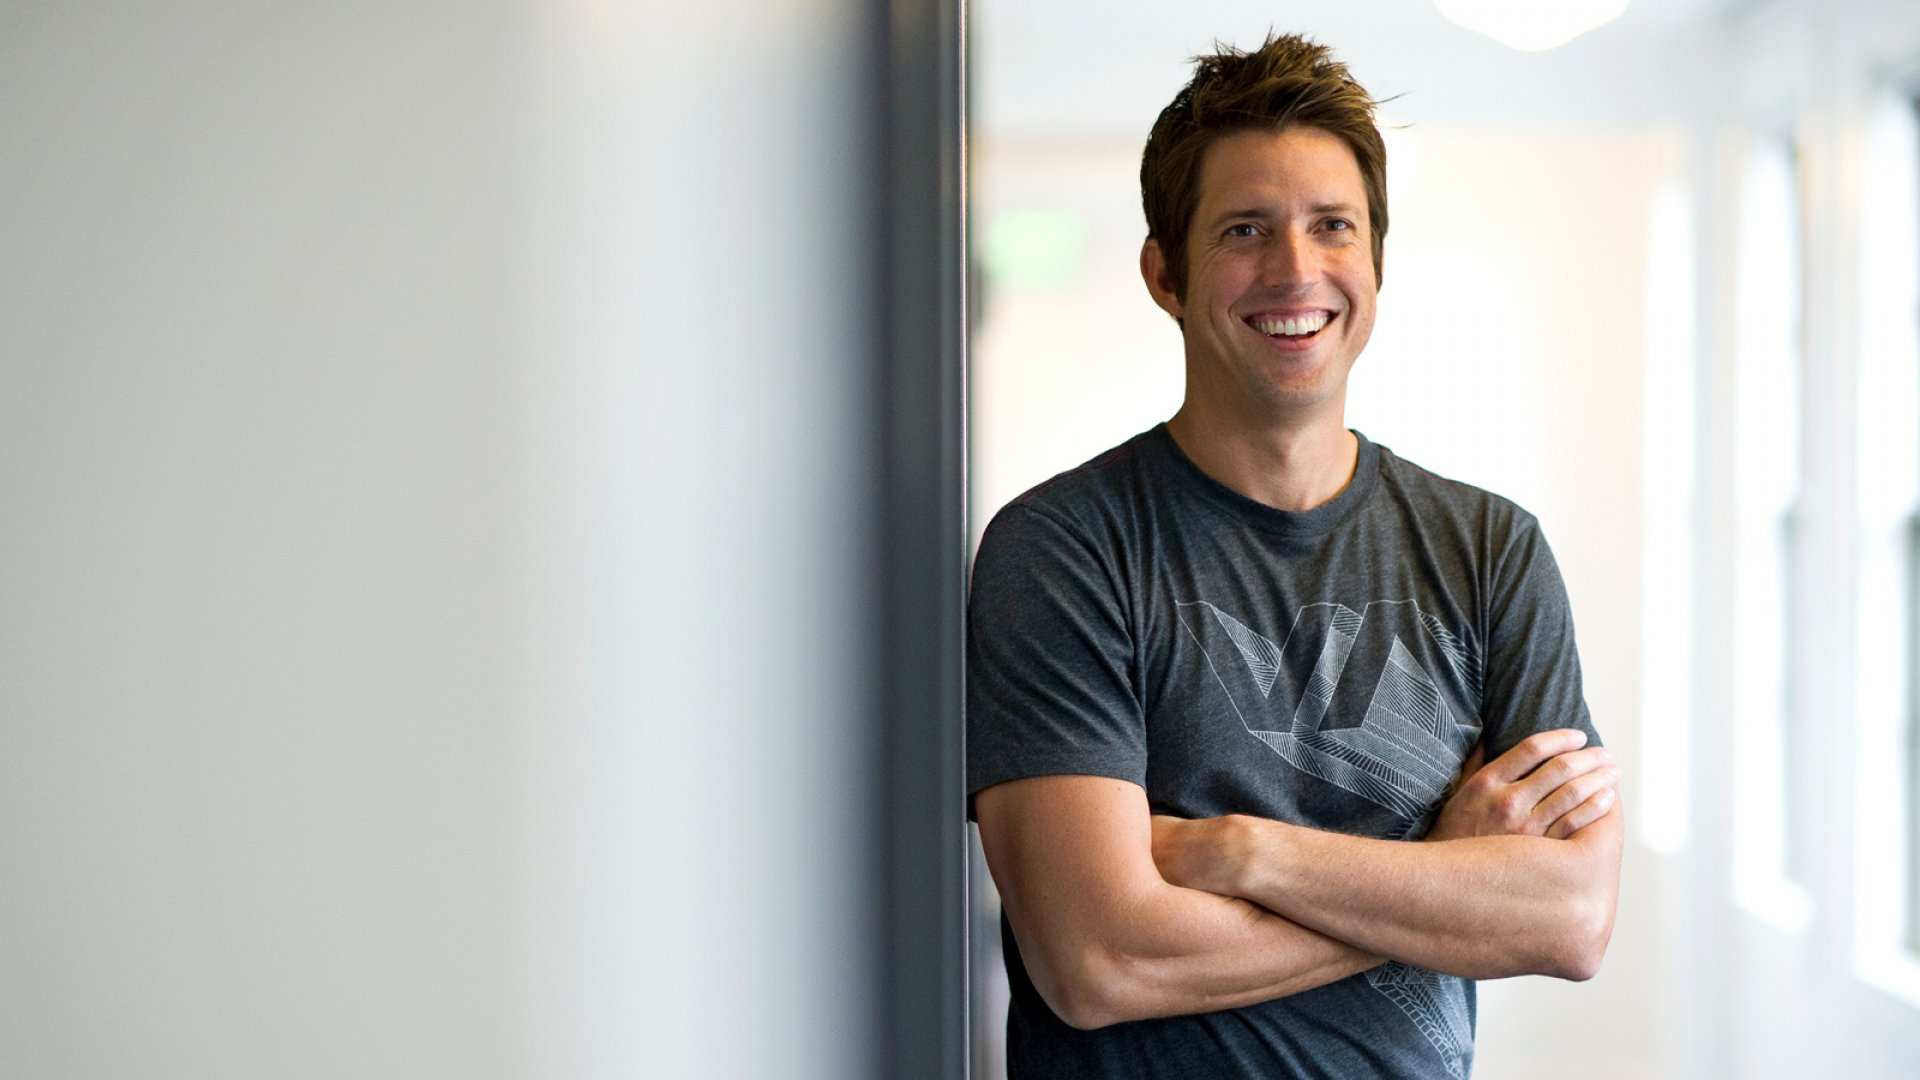 GoPro's Nicholas Woodman is one of the most highly paid executives in the U.S.